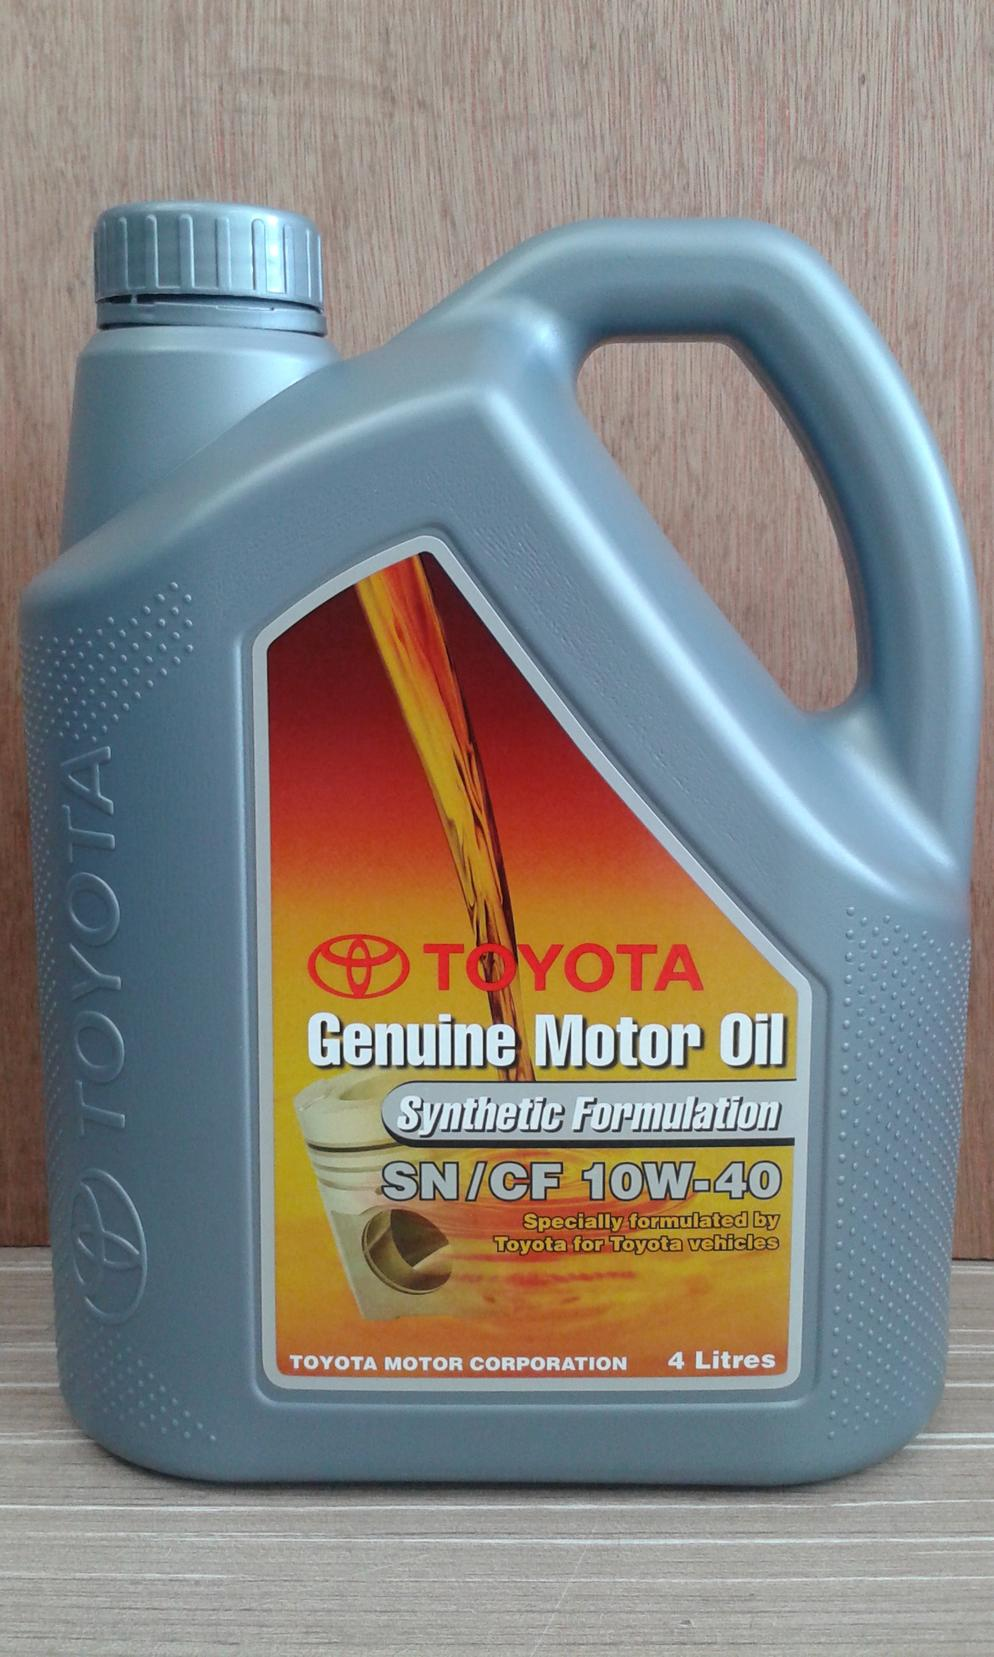 the benefit of oil engine Oil filter technology has become better at trapping contaminants in the oil however it is the loss of viscosity and lubricity which could seriously cripple an engine as mentioned above most engine oils are very good at minimizing these two issues.